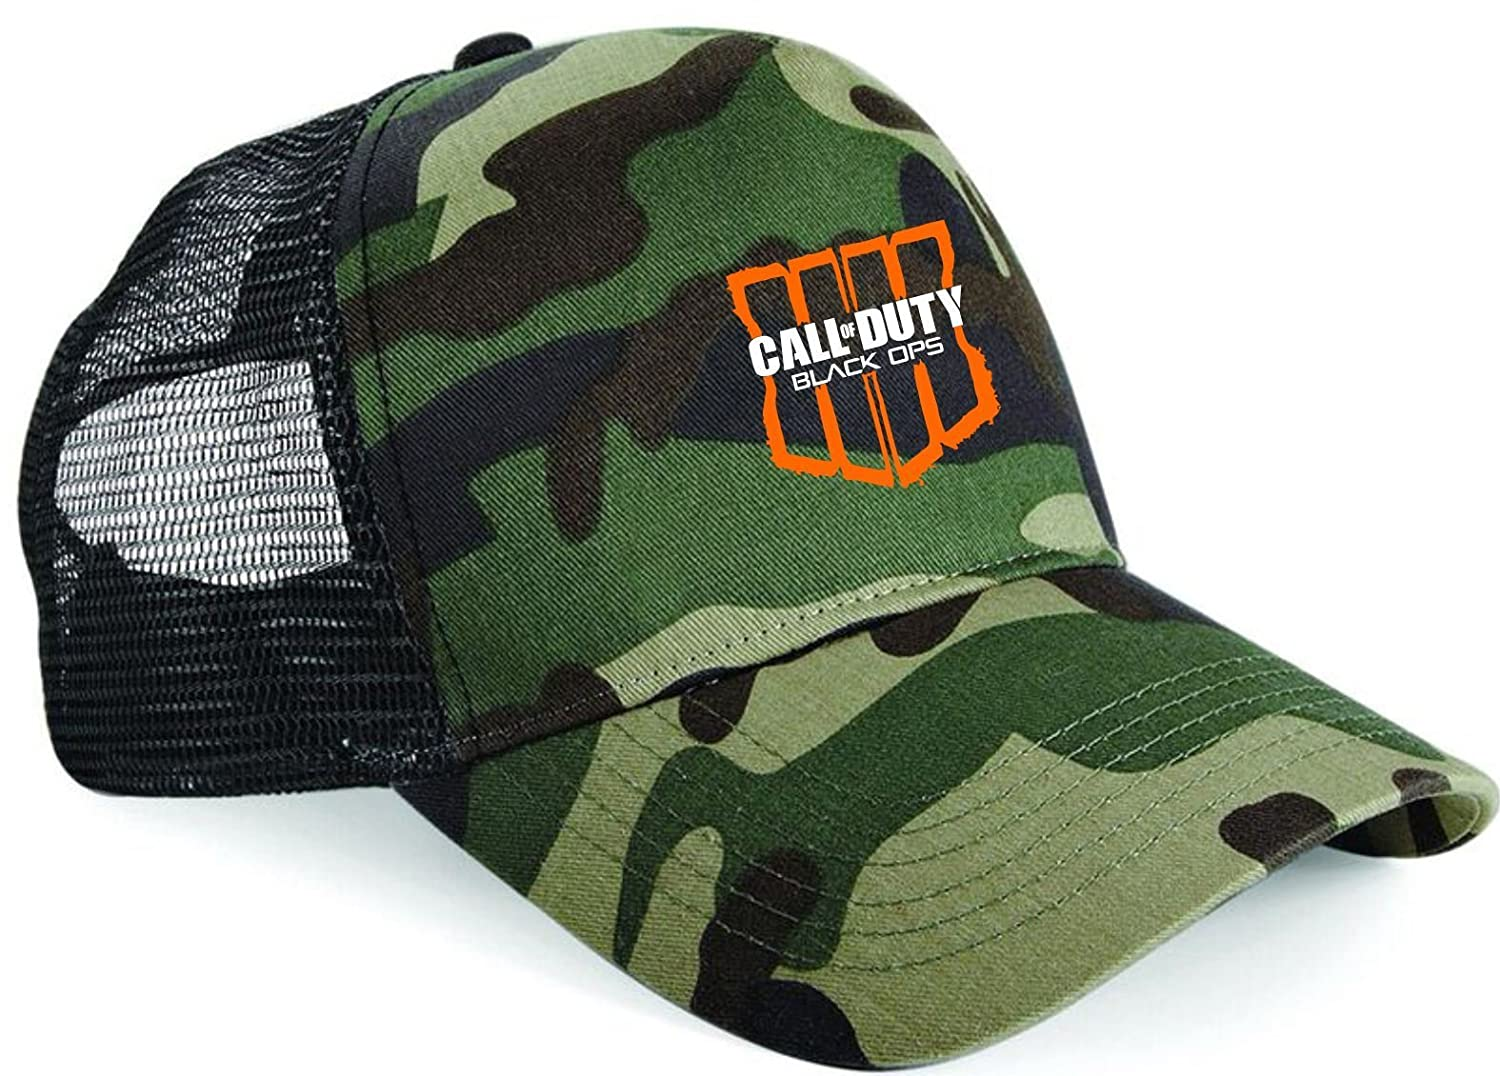 Taurus Clothing COD Black Ops 4 gaming gamers Camo Trucker Cap PS4 XBOX